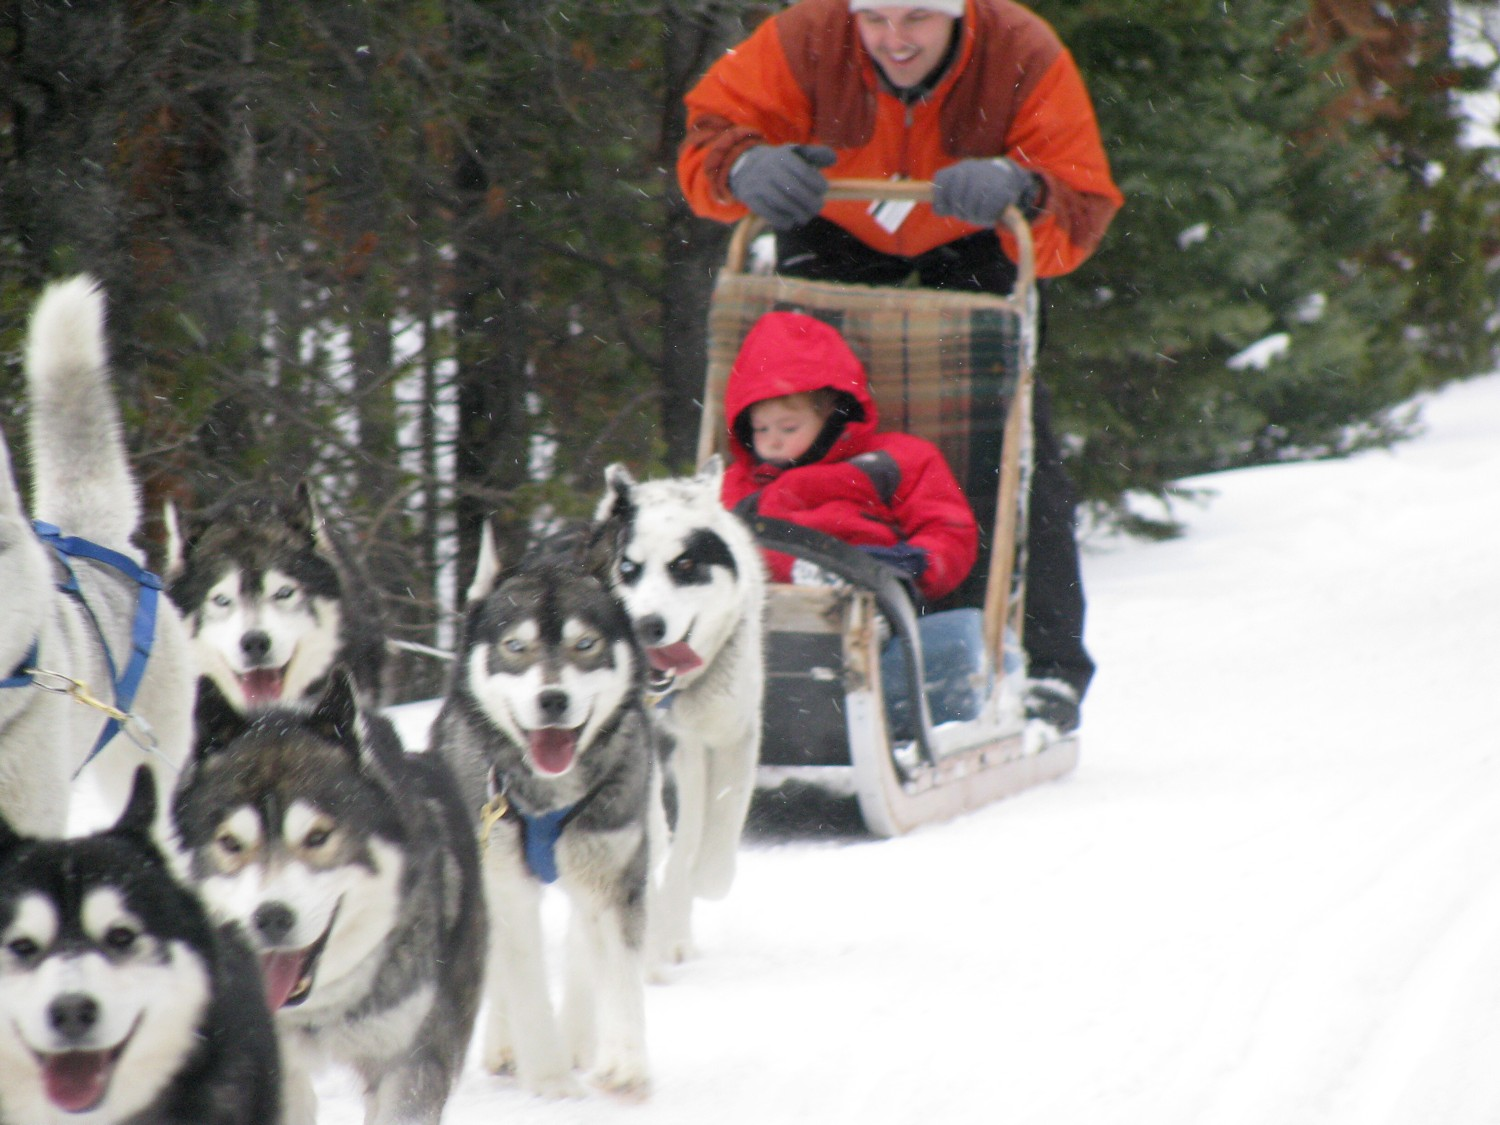 Dog sledding is one of the non-skiing activities at Breckenridge, where you can also get a free Mining Tour with a mountain ski ambassador © 2016 Eric Leiberman/goingplacesfarandnear.com